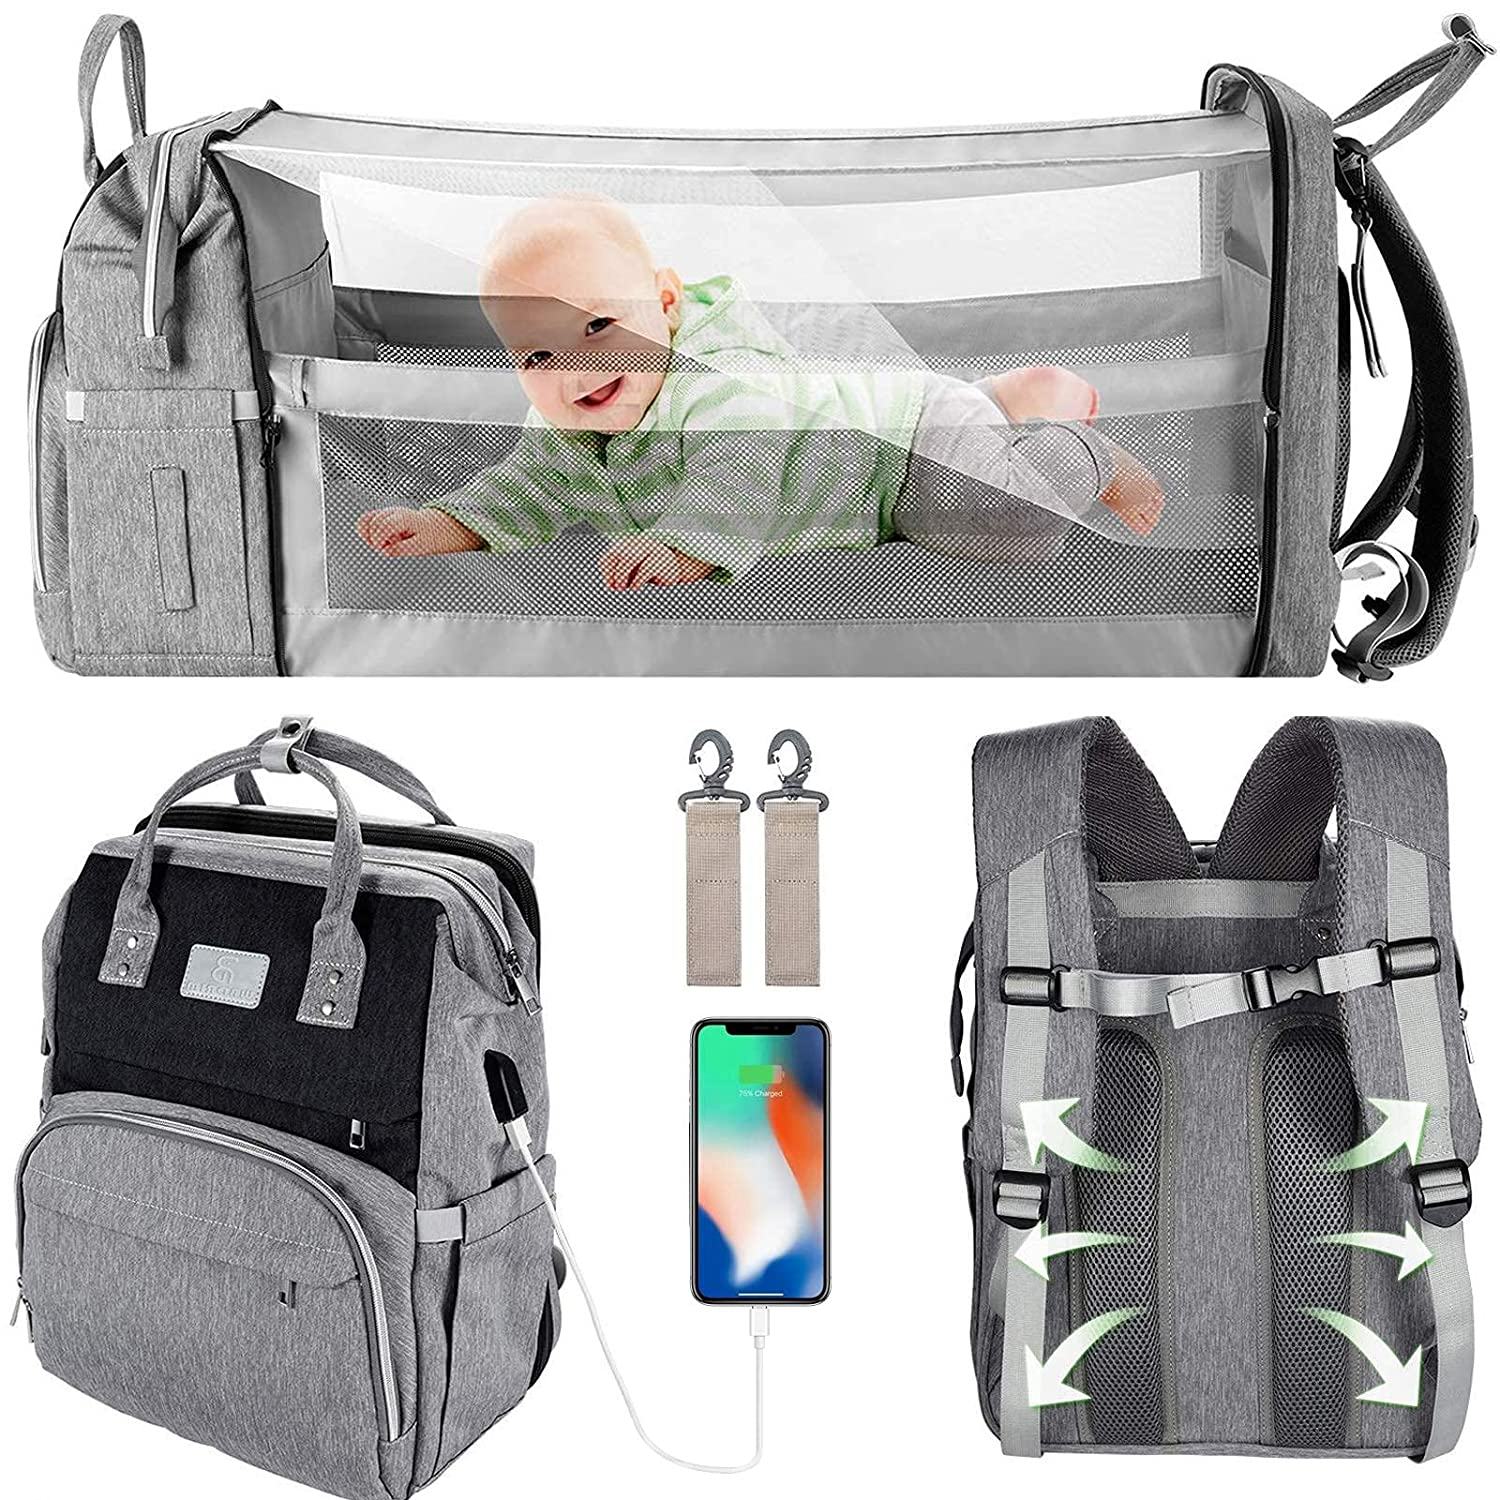 Diaper Bag Backpack with Changing Station, WBDRIM Travel Foldable Modern Baby Bag, Mom Dad Bags for Boy Girl, Large Capacity Waterproof Multifunction Grey